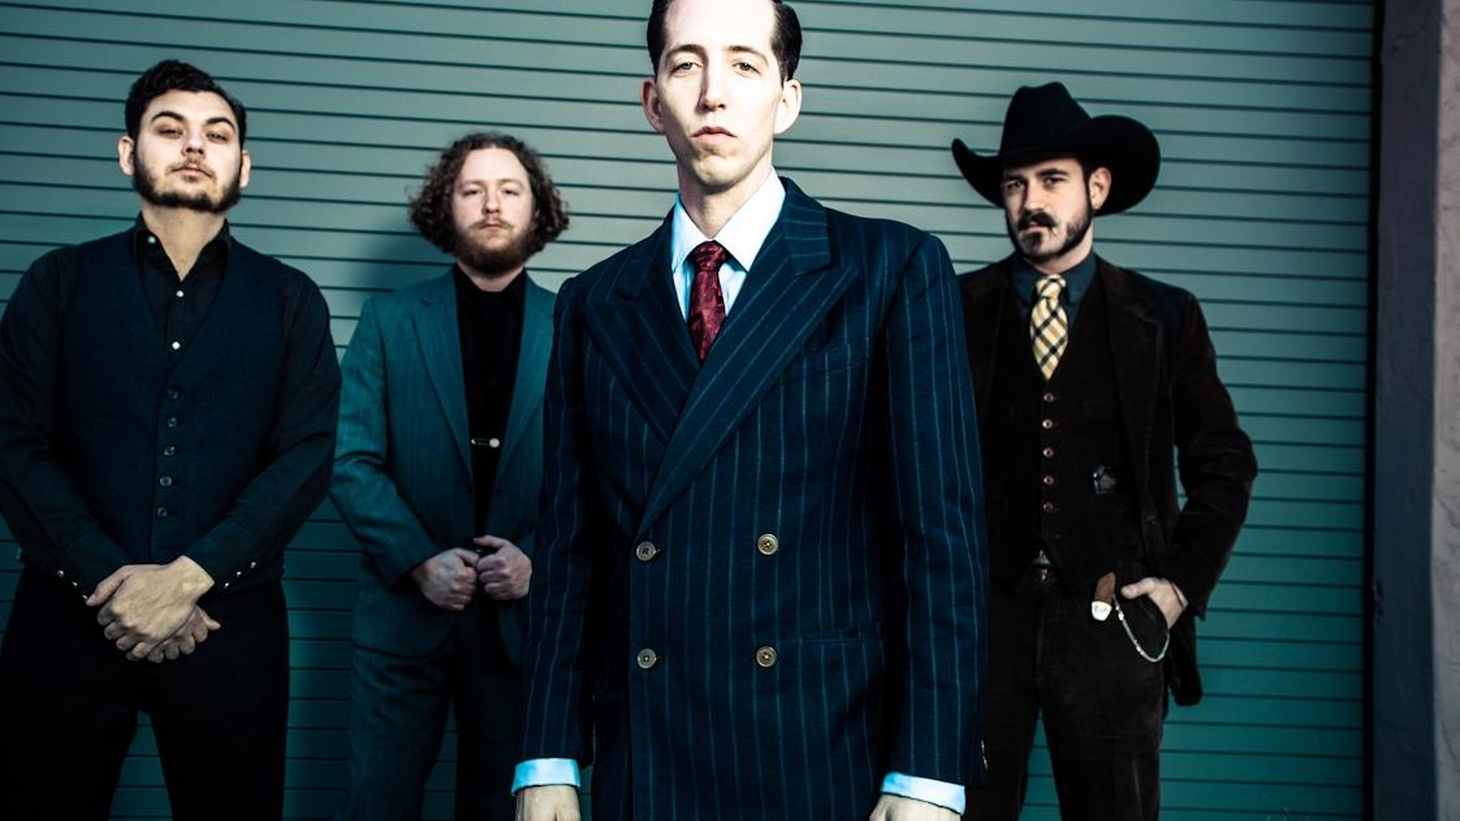 Missouri-based